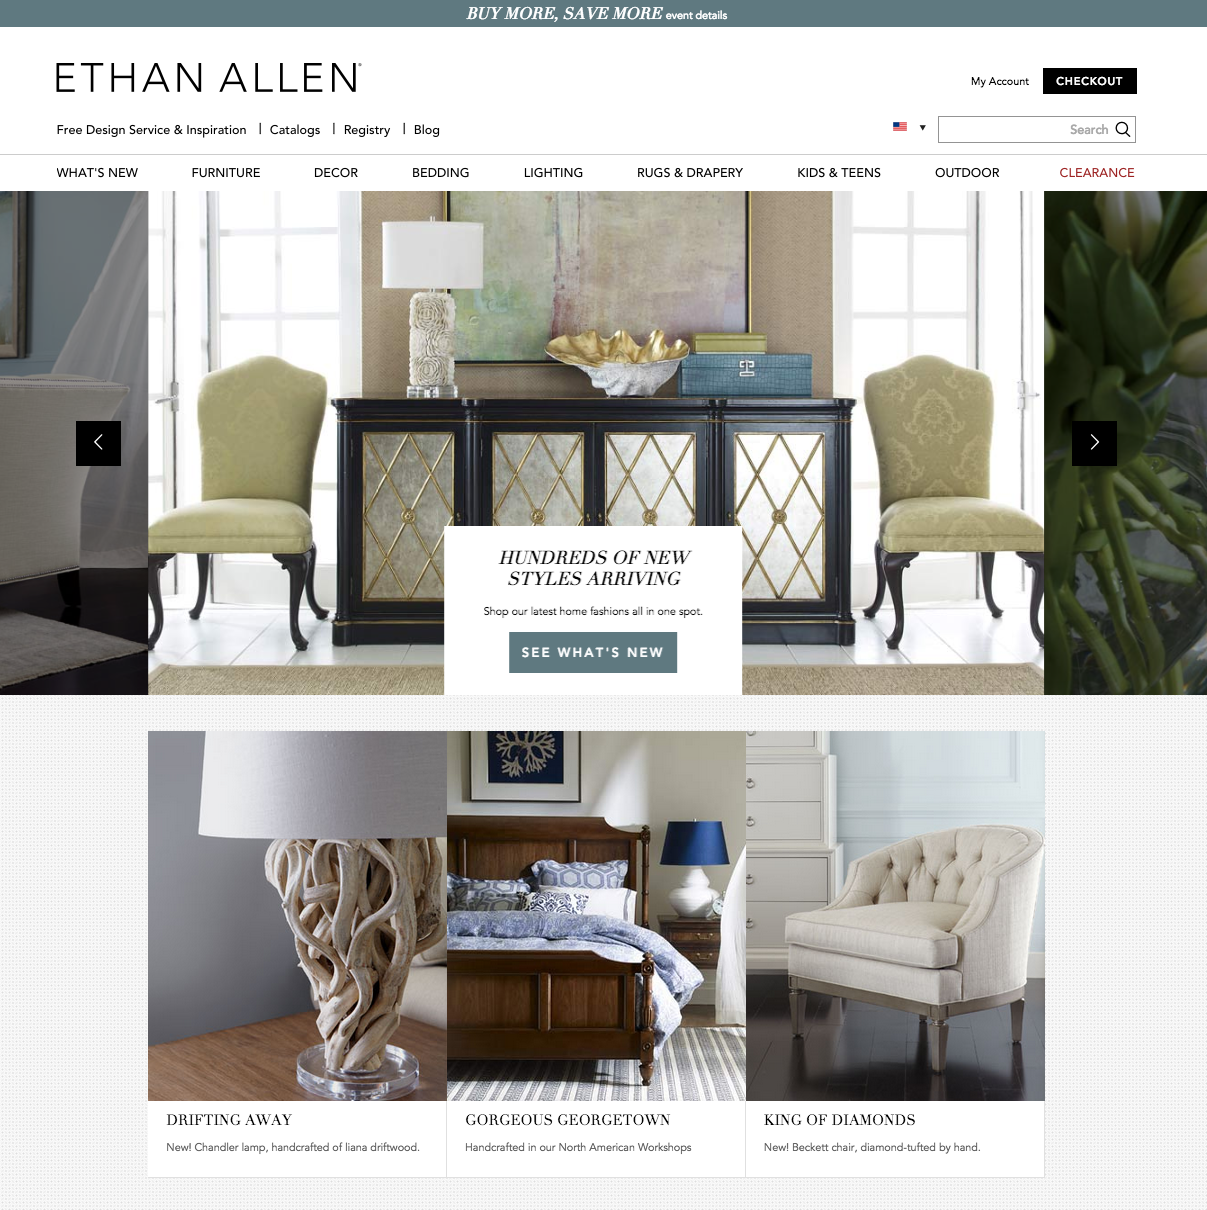 Top 372 Complaints And Reviews About Ethan Allen